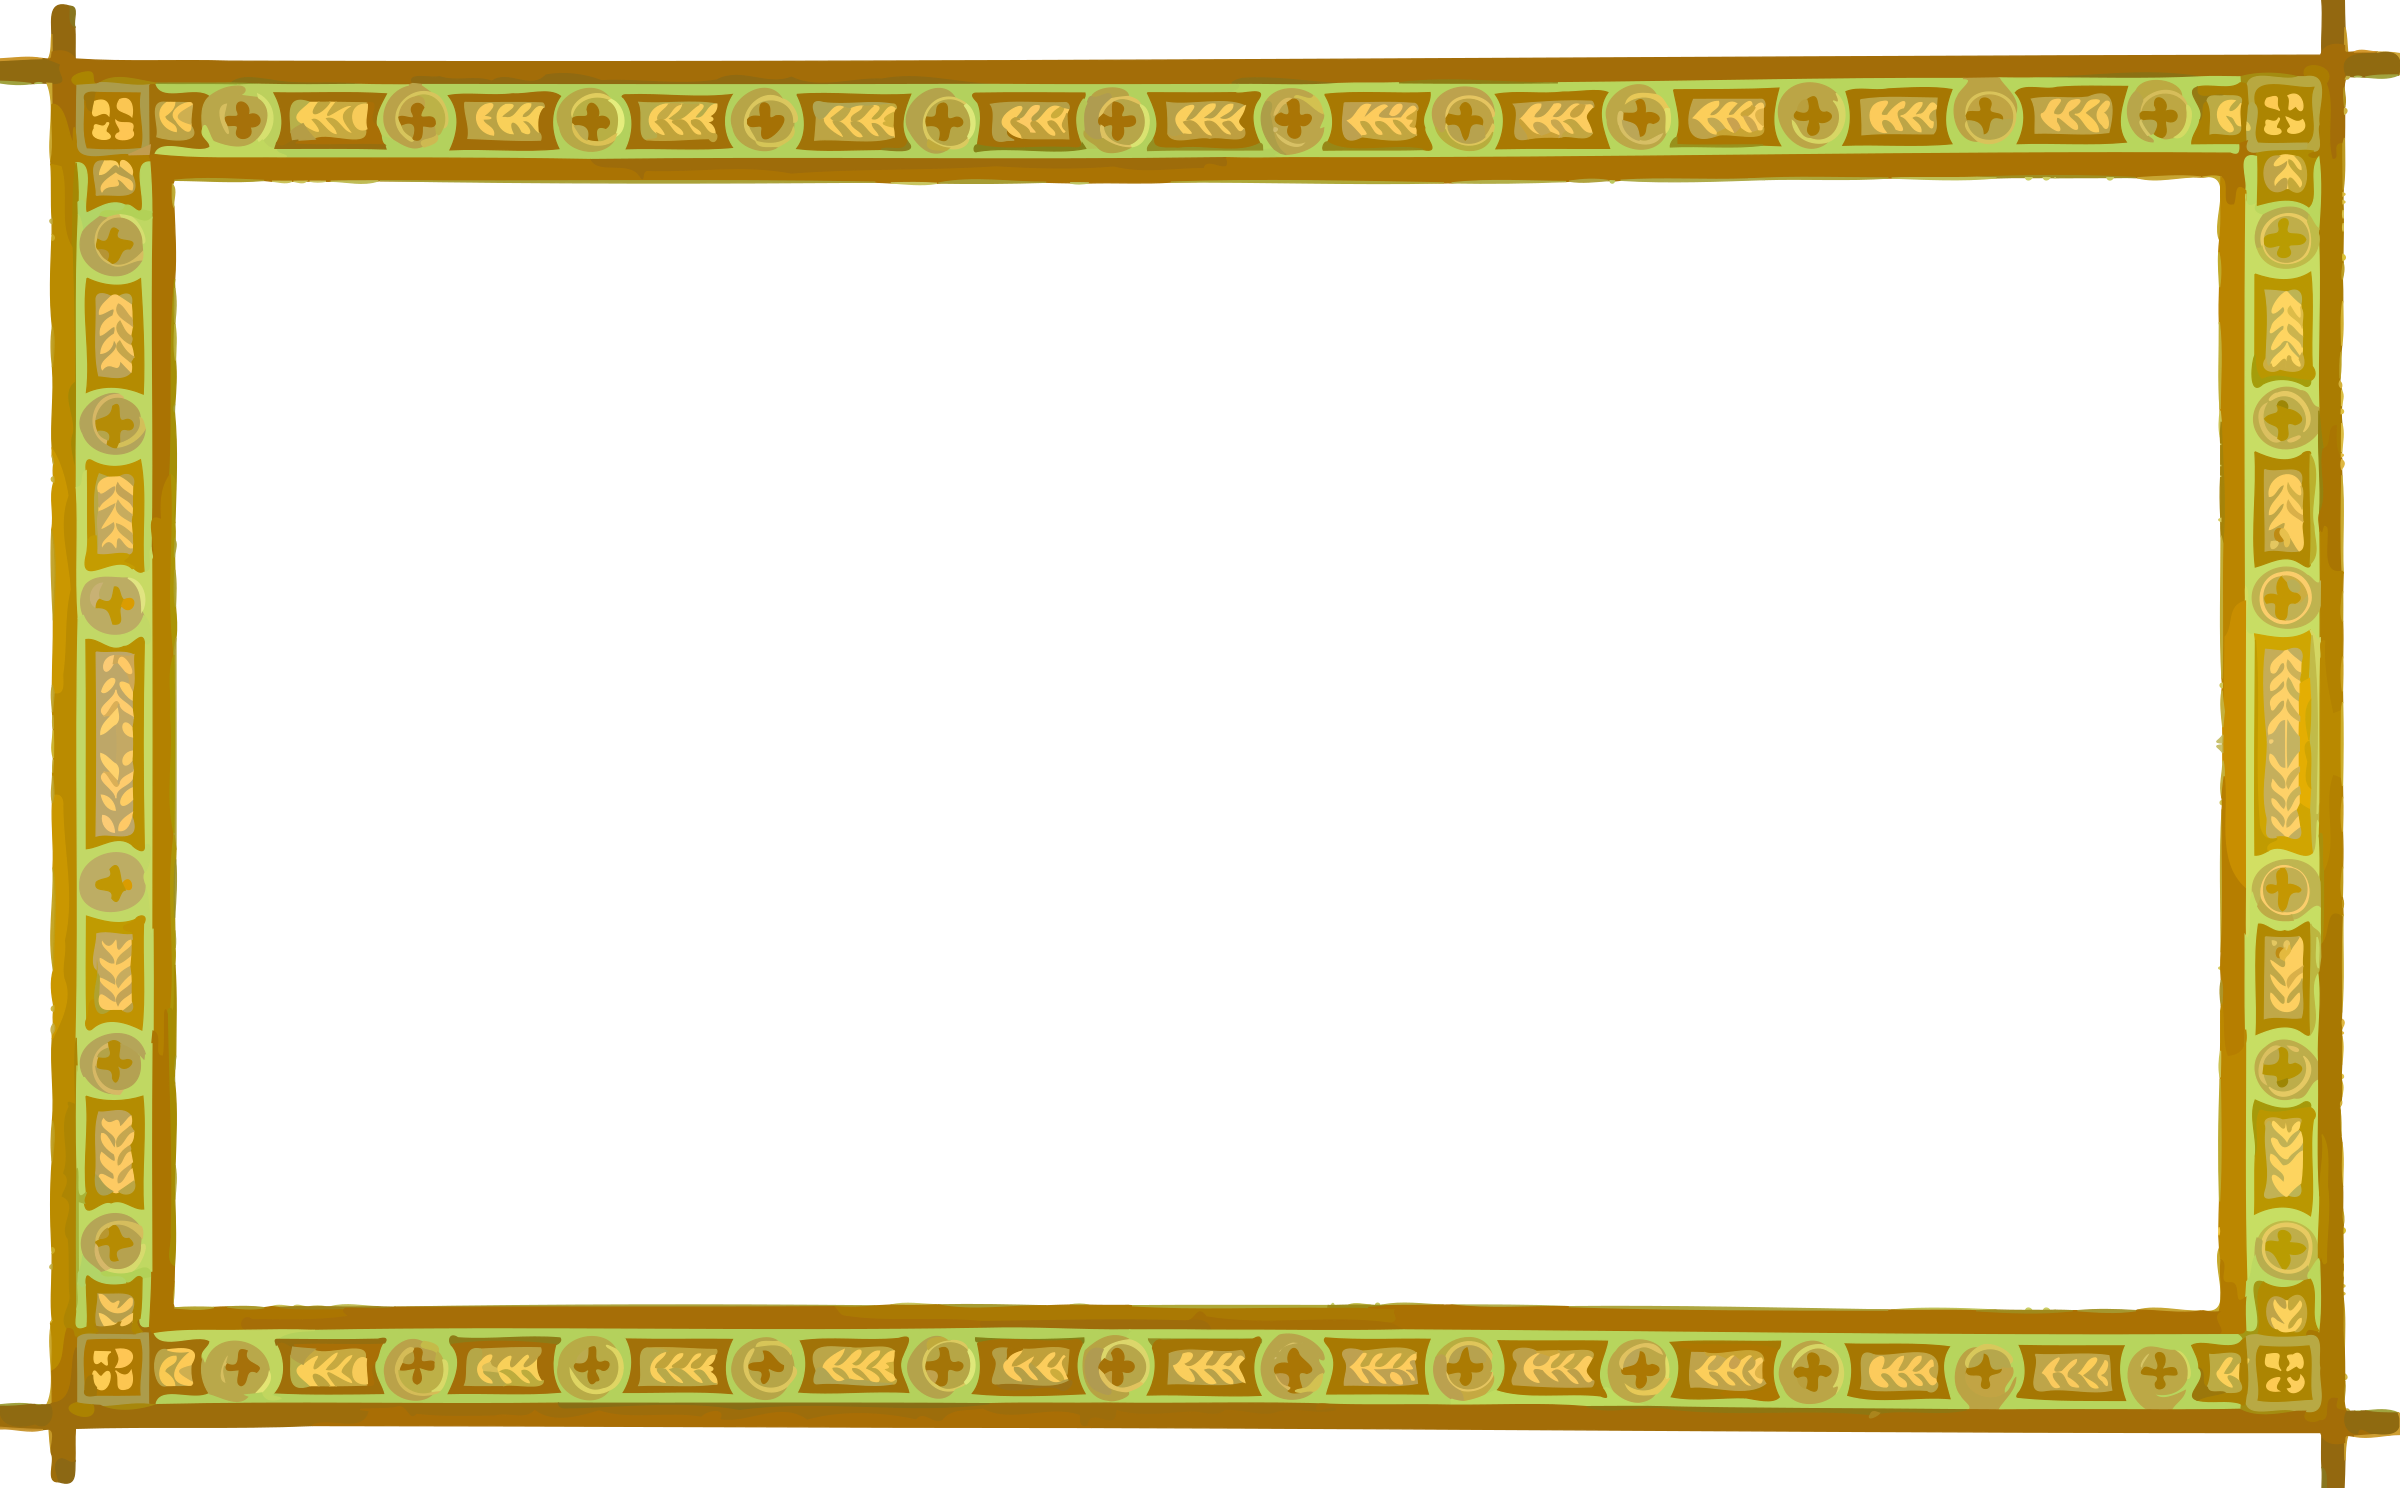 Ornate frame 21 by Firkin